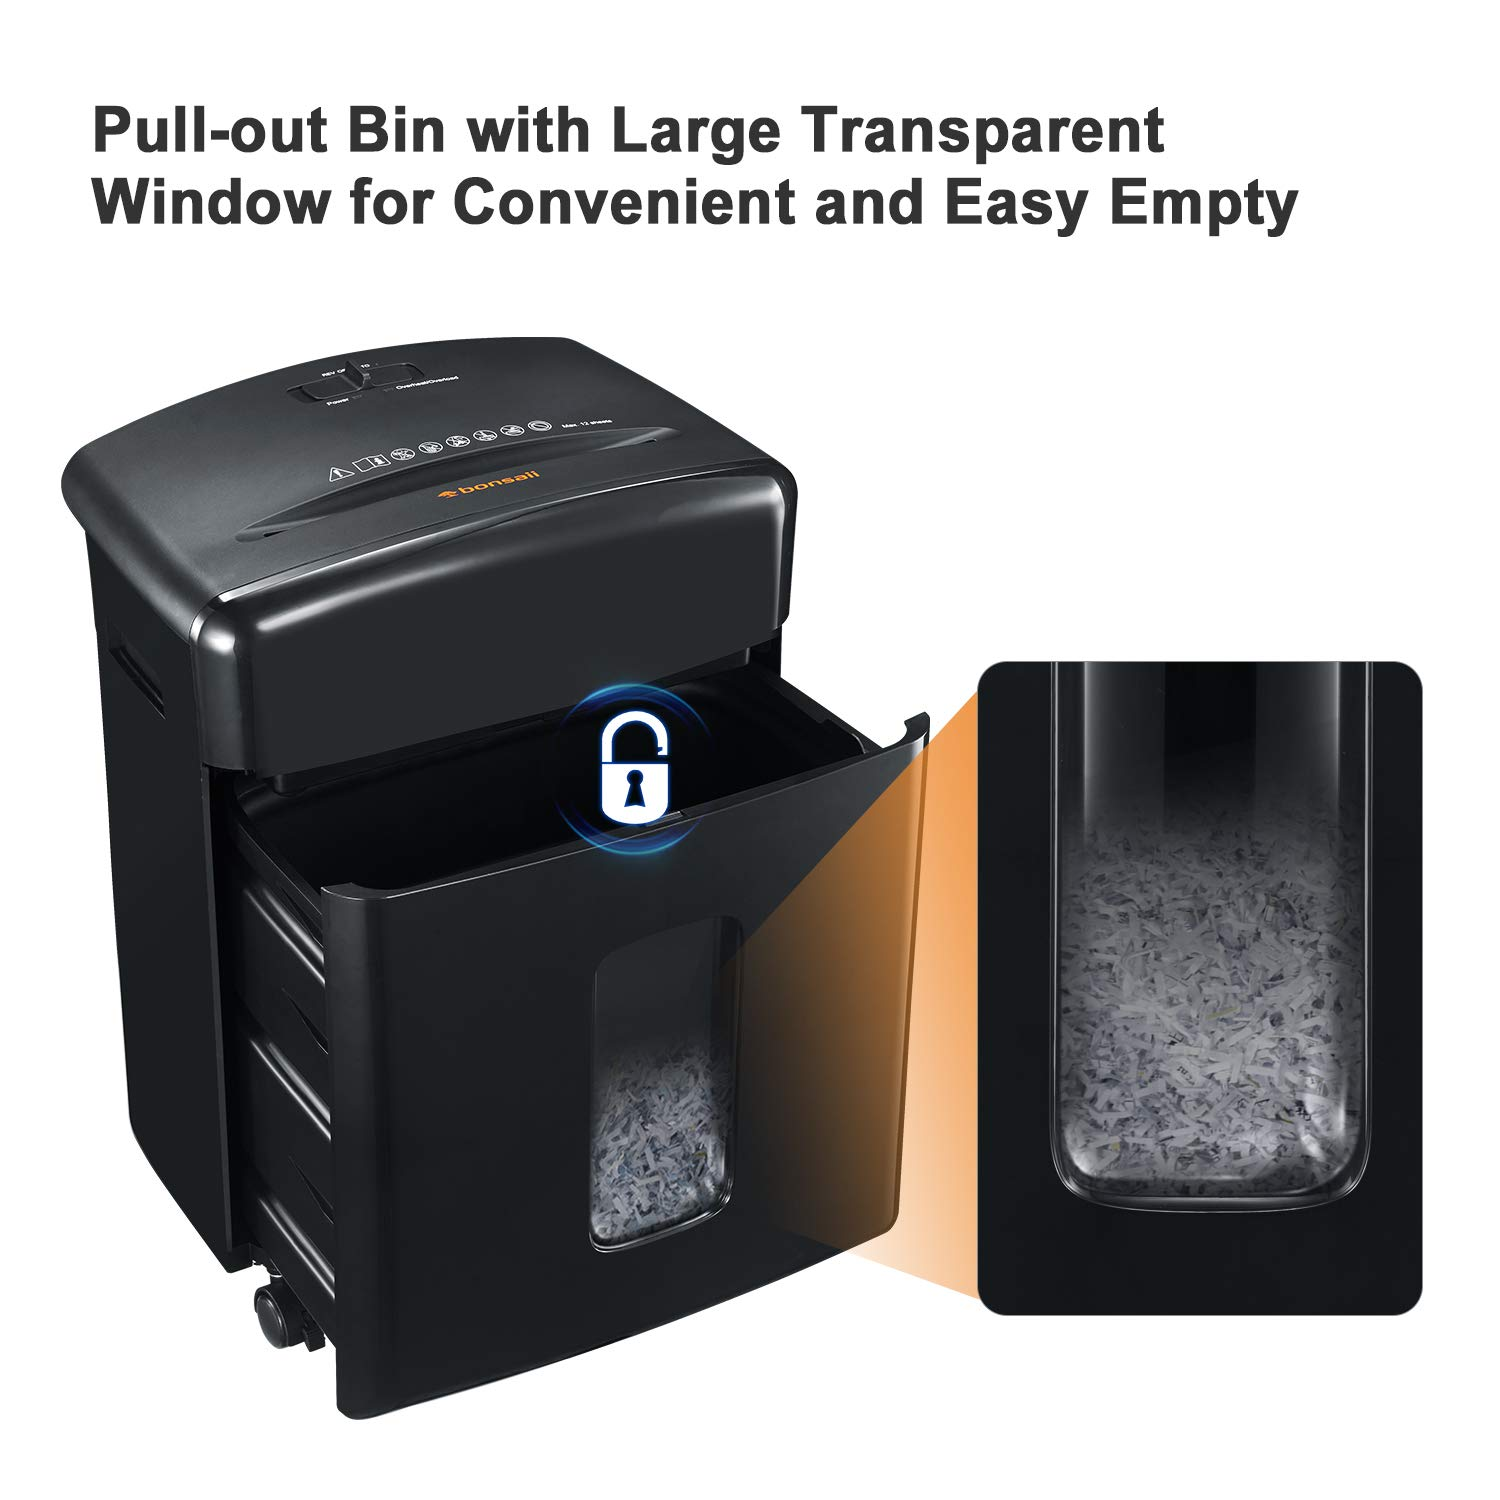 Bonsaii 12-Sheet Cross-Cut Paper, CD/DVD, and Credit Card Shredder with 3.5-gallons Pullout Basket, Black (C220-A) by bonsaii (Image #4)